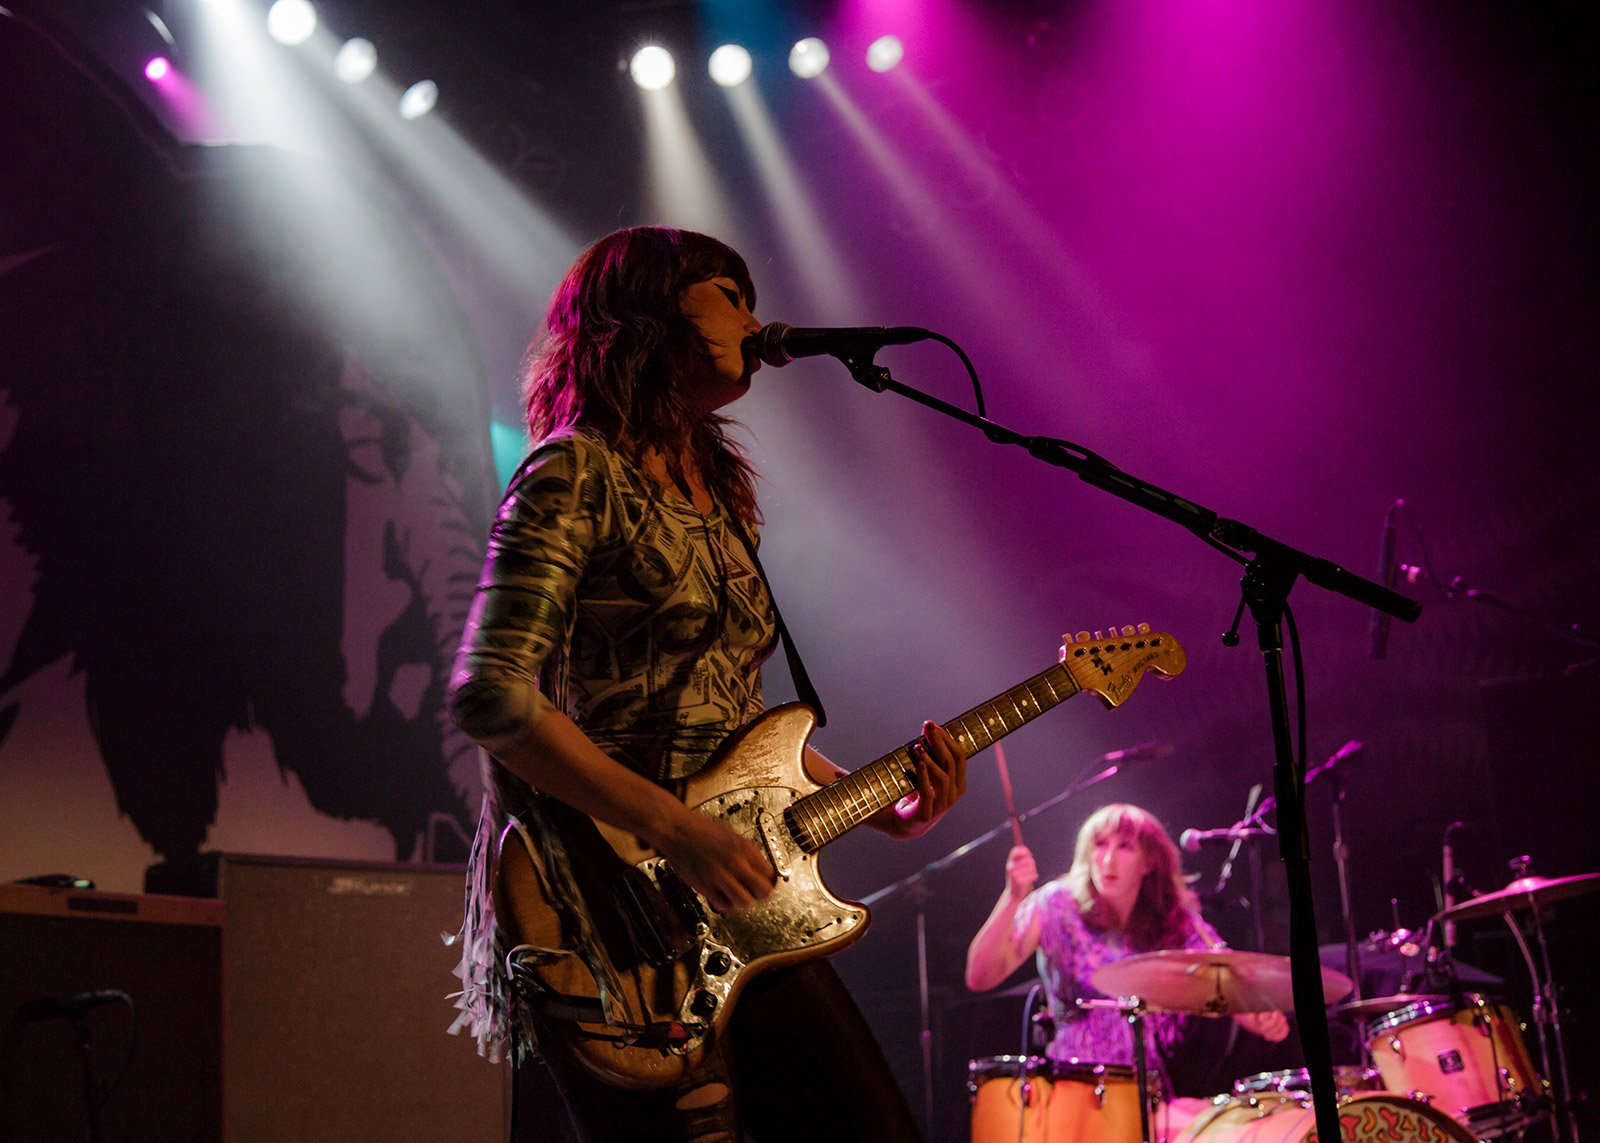 Black Rebel Motorcycle Club, DFA 1979 & Deap Vally on tour now (check out pics from Chicago) https://t.co/LQFPPSc1a9 https://t.co/fpcghI5InX